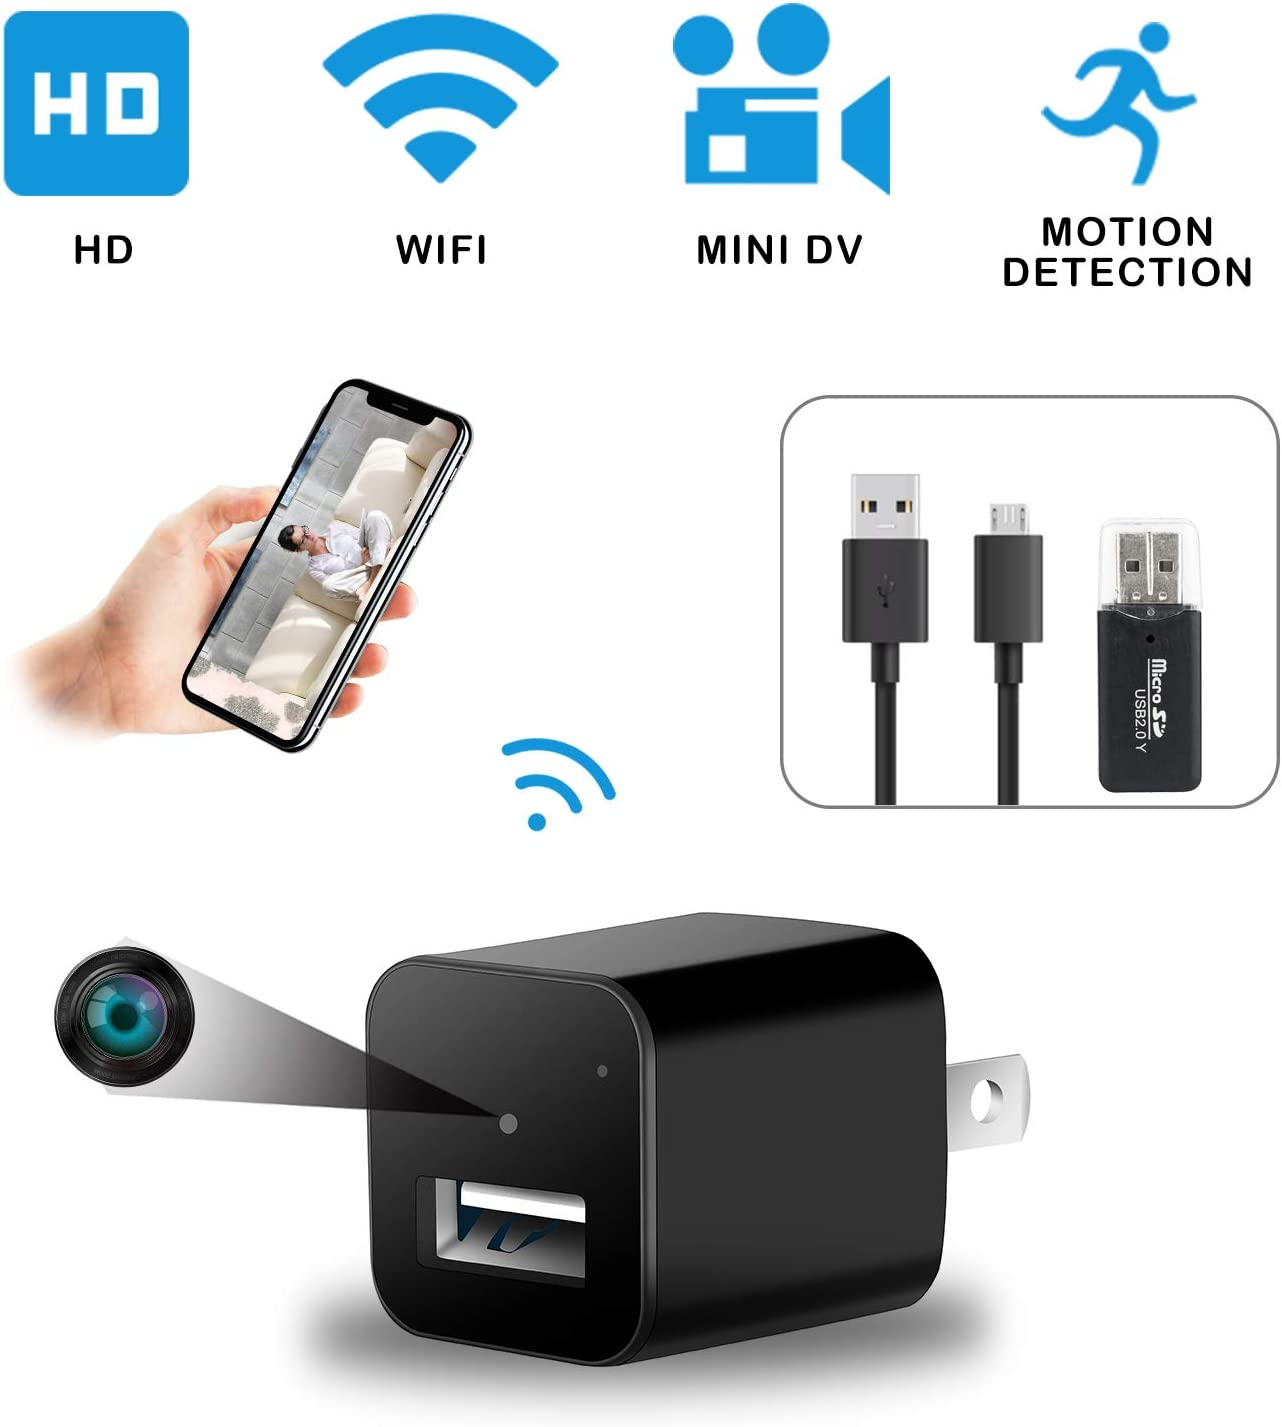 Hidden Spy Security Mini Camera – 2 Pack USB Charger Full HD 1080p Resolution Loop Recording, Motion Detection for Home, Office Surveillance and Security, Charge iPhone, Android Devices Nanny cam